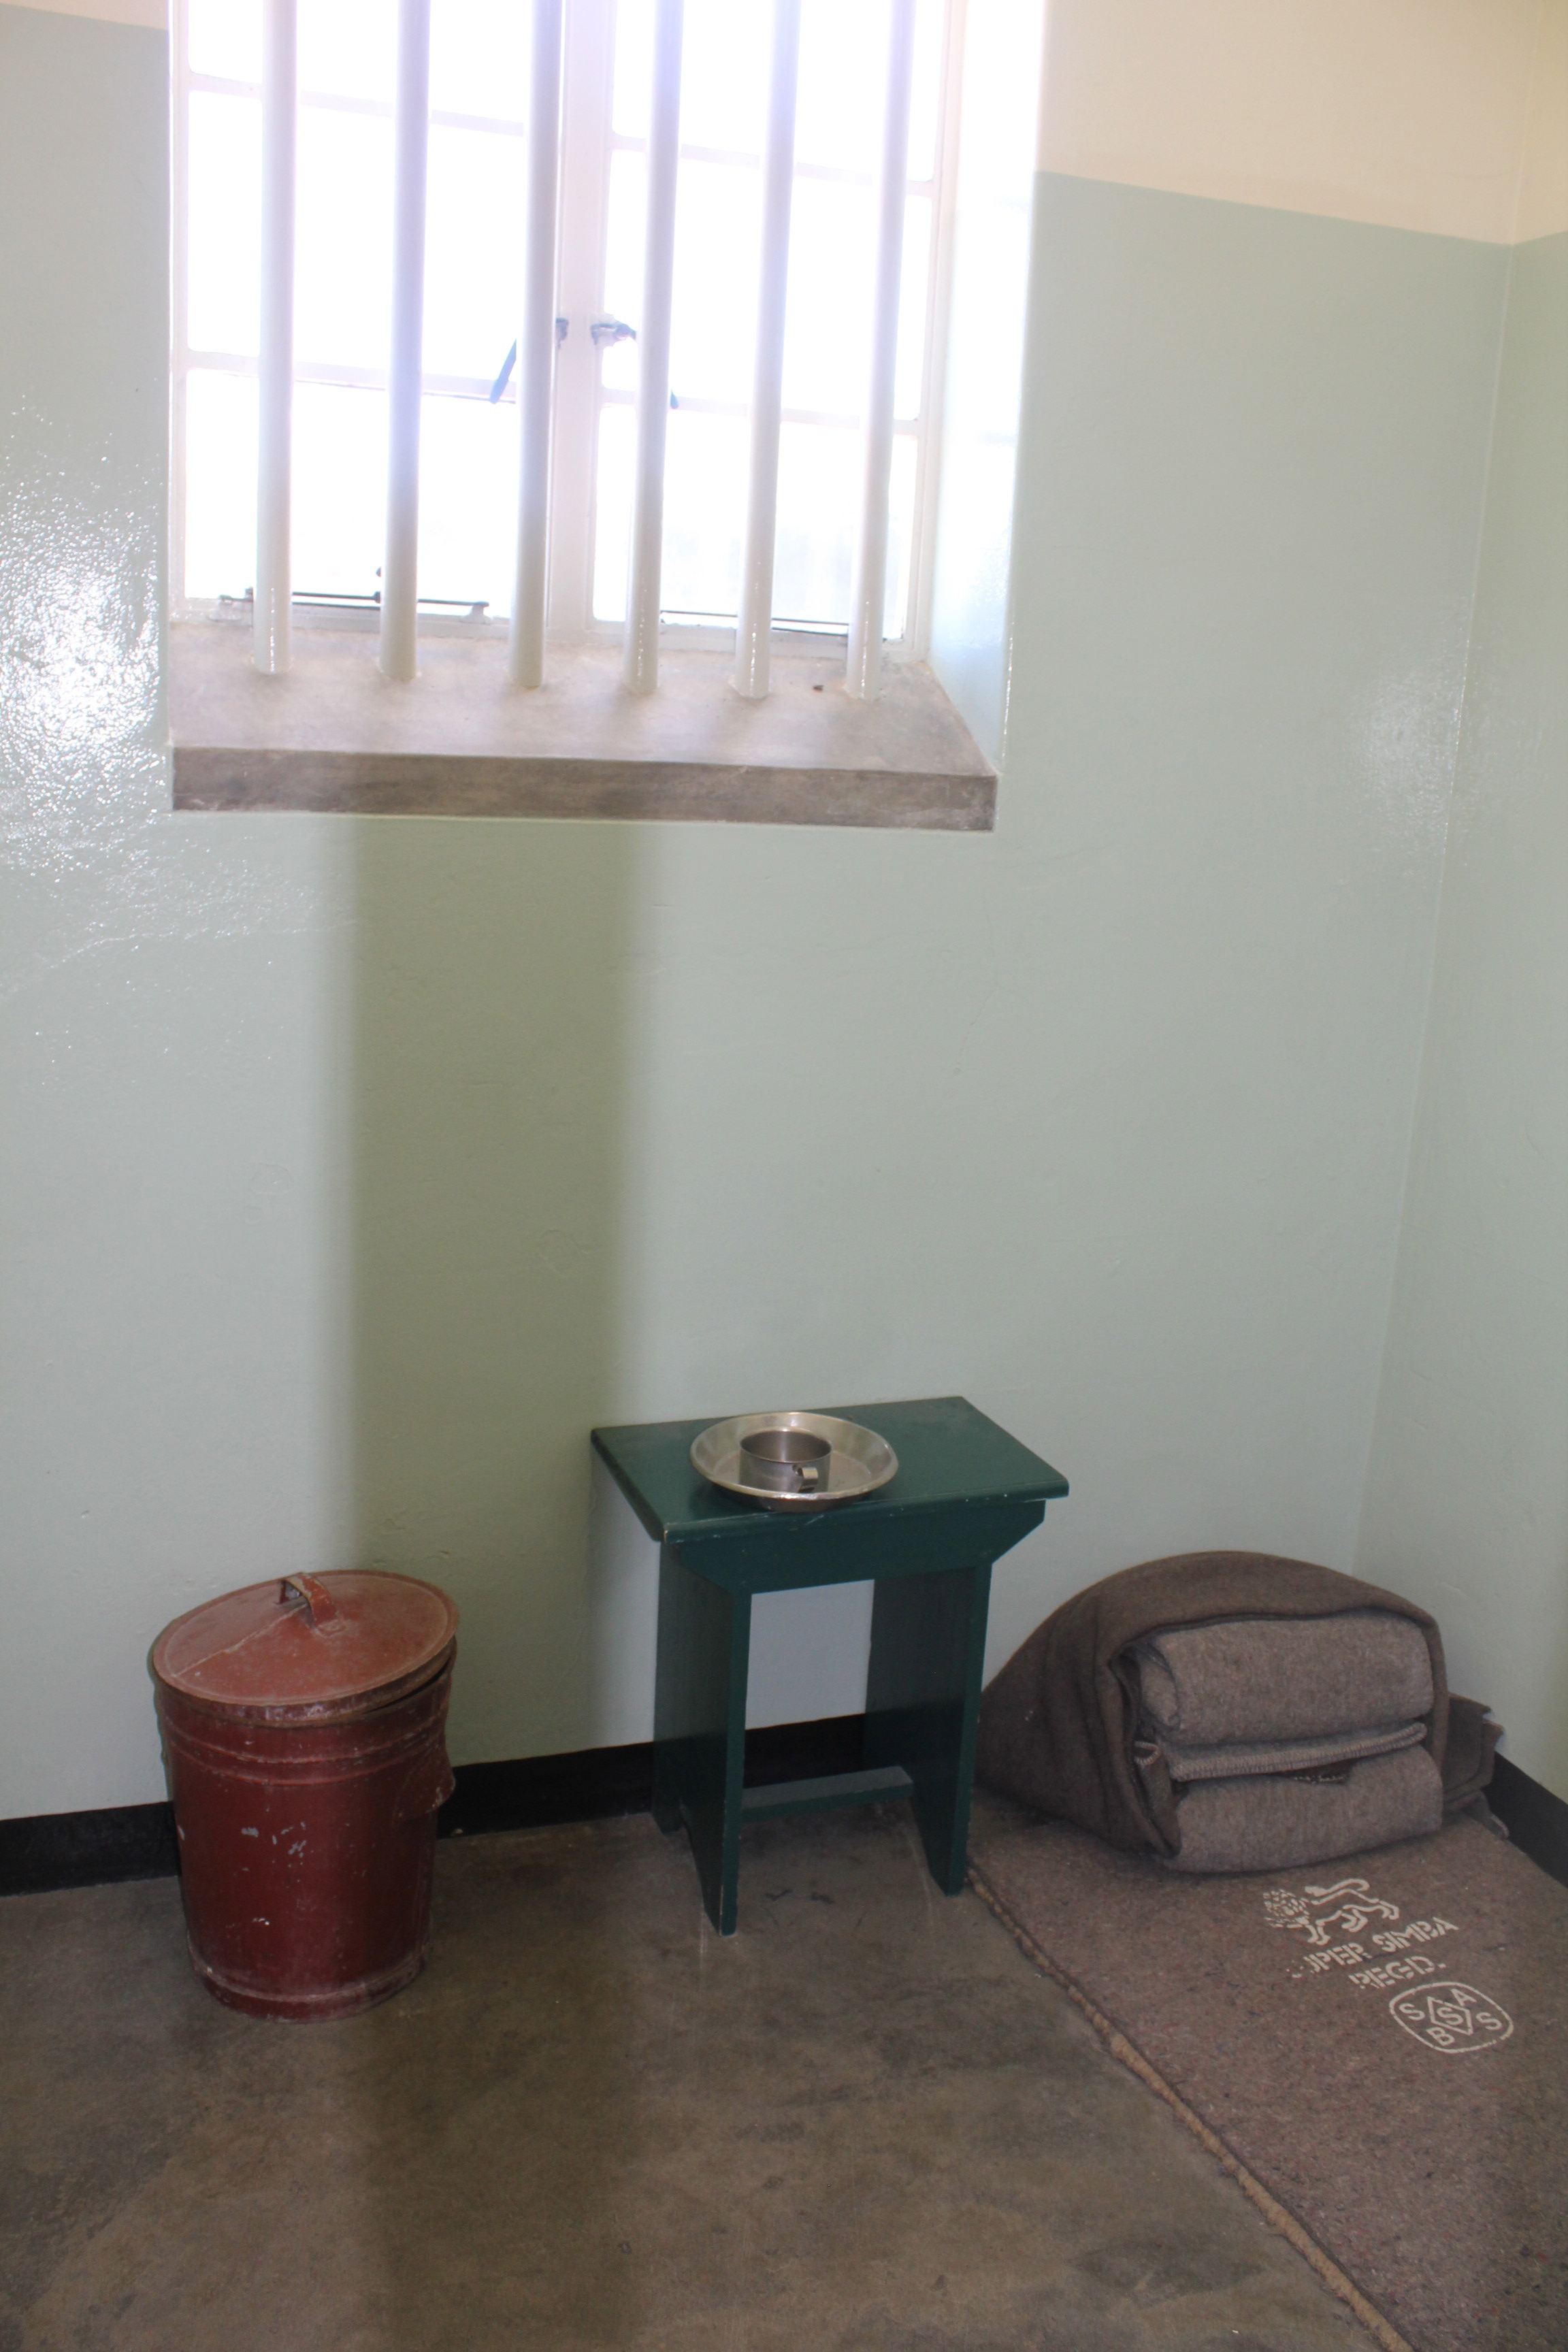 The picture I took of Nelson Mandela's prison cell